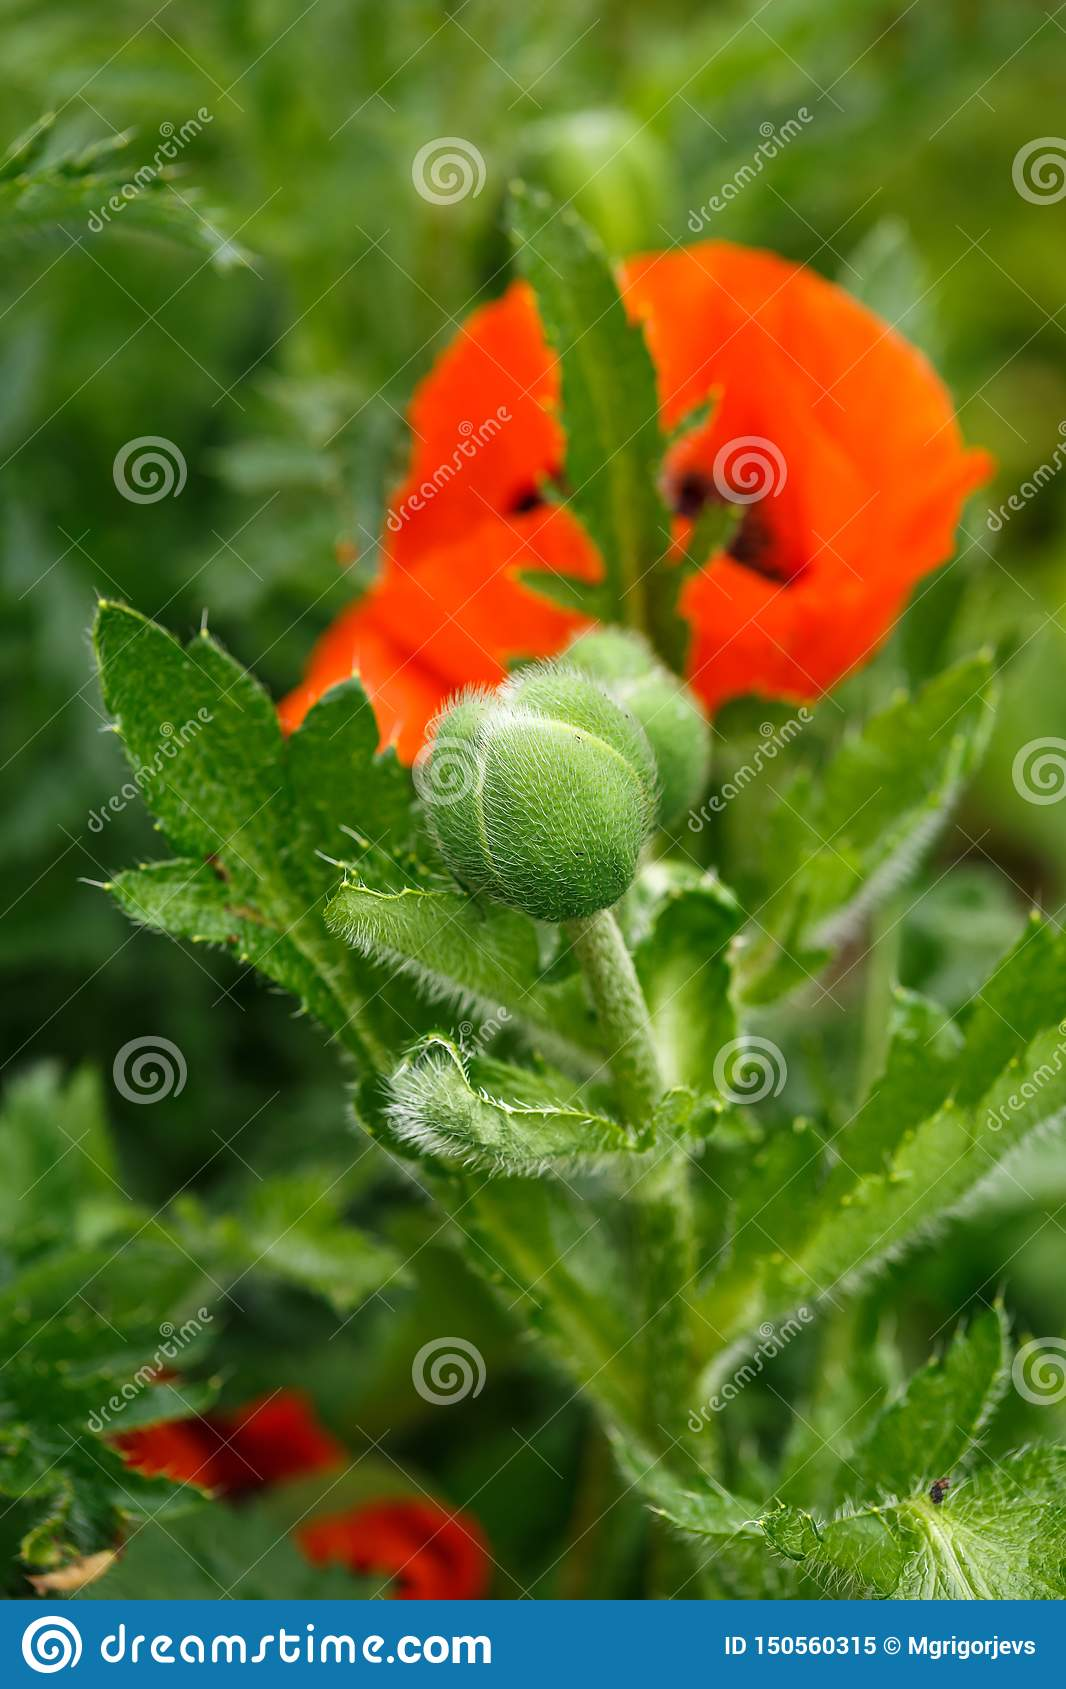 Red poppy flower bud with green leaves on the background in summer garden